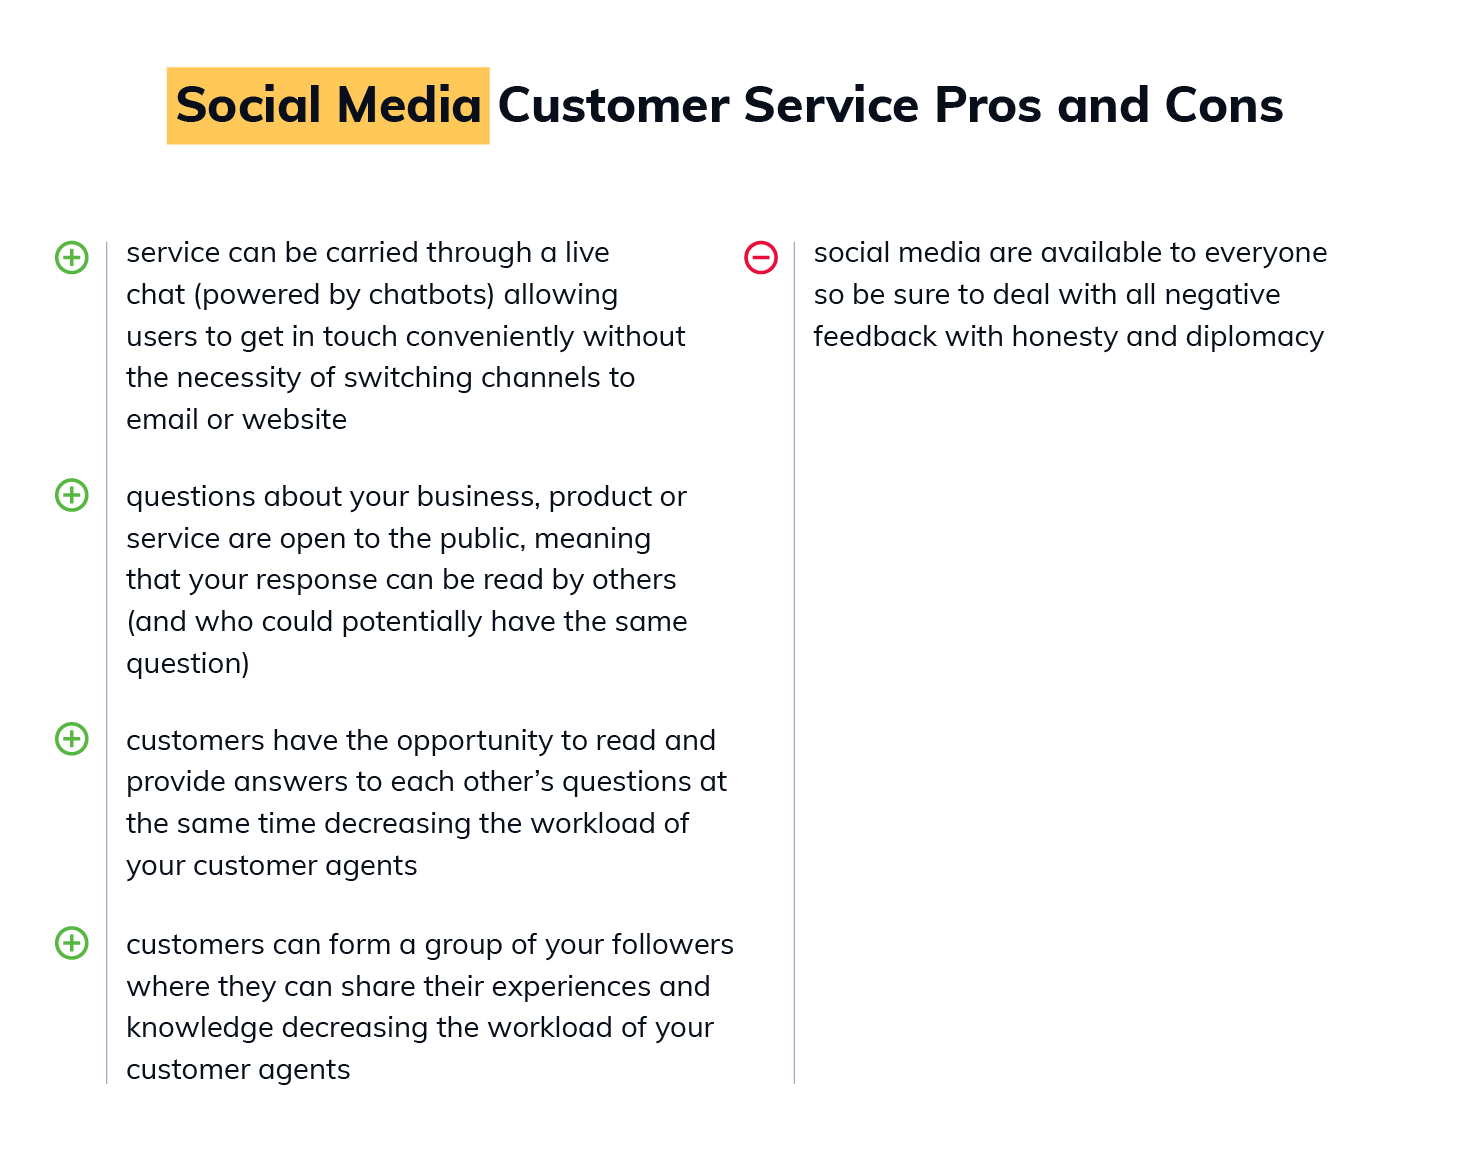 Pros and Cons of Social Media Customer Service